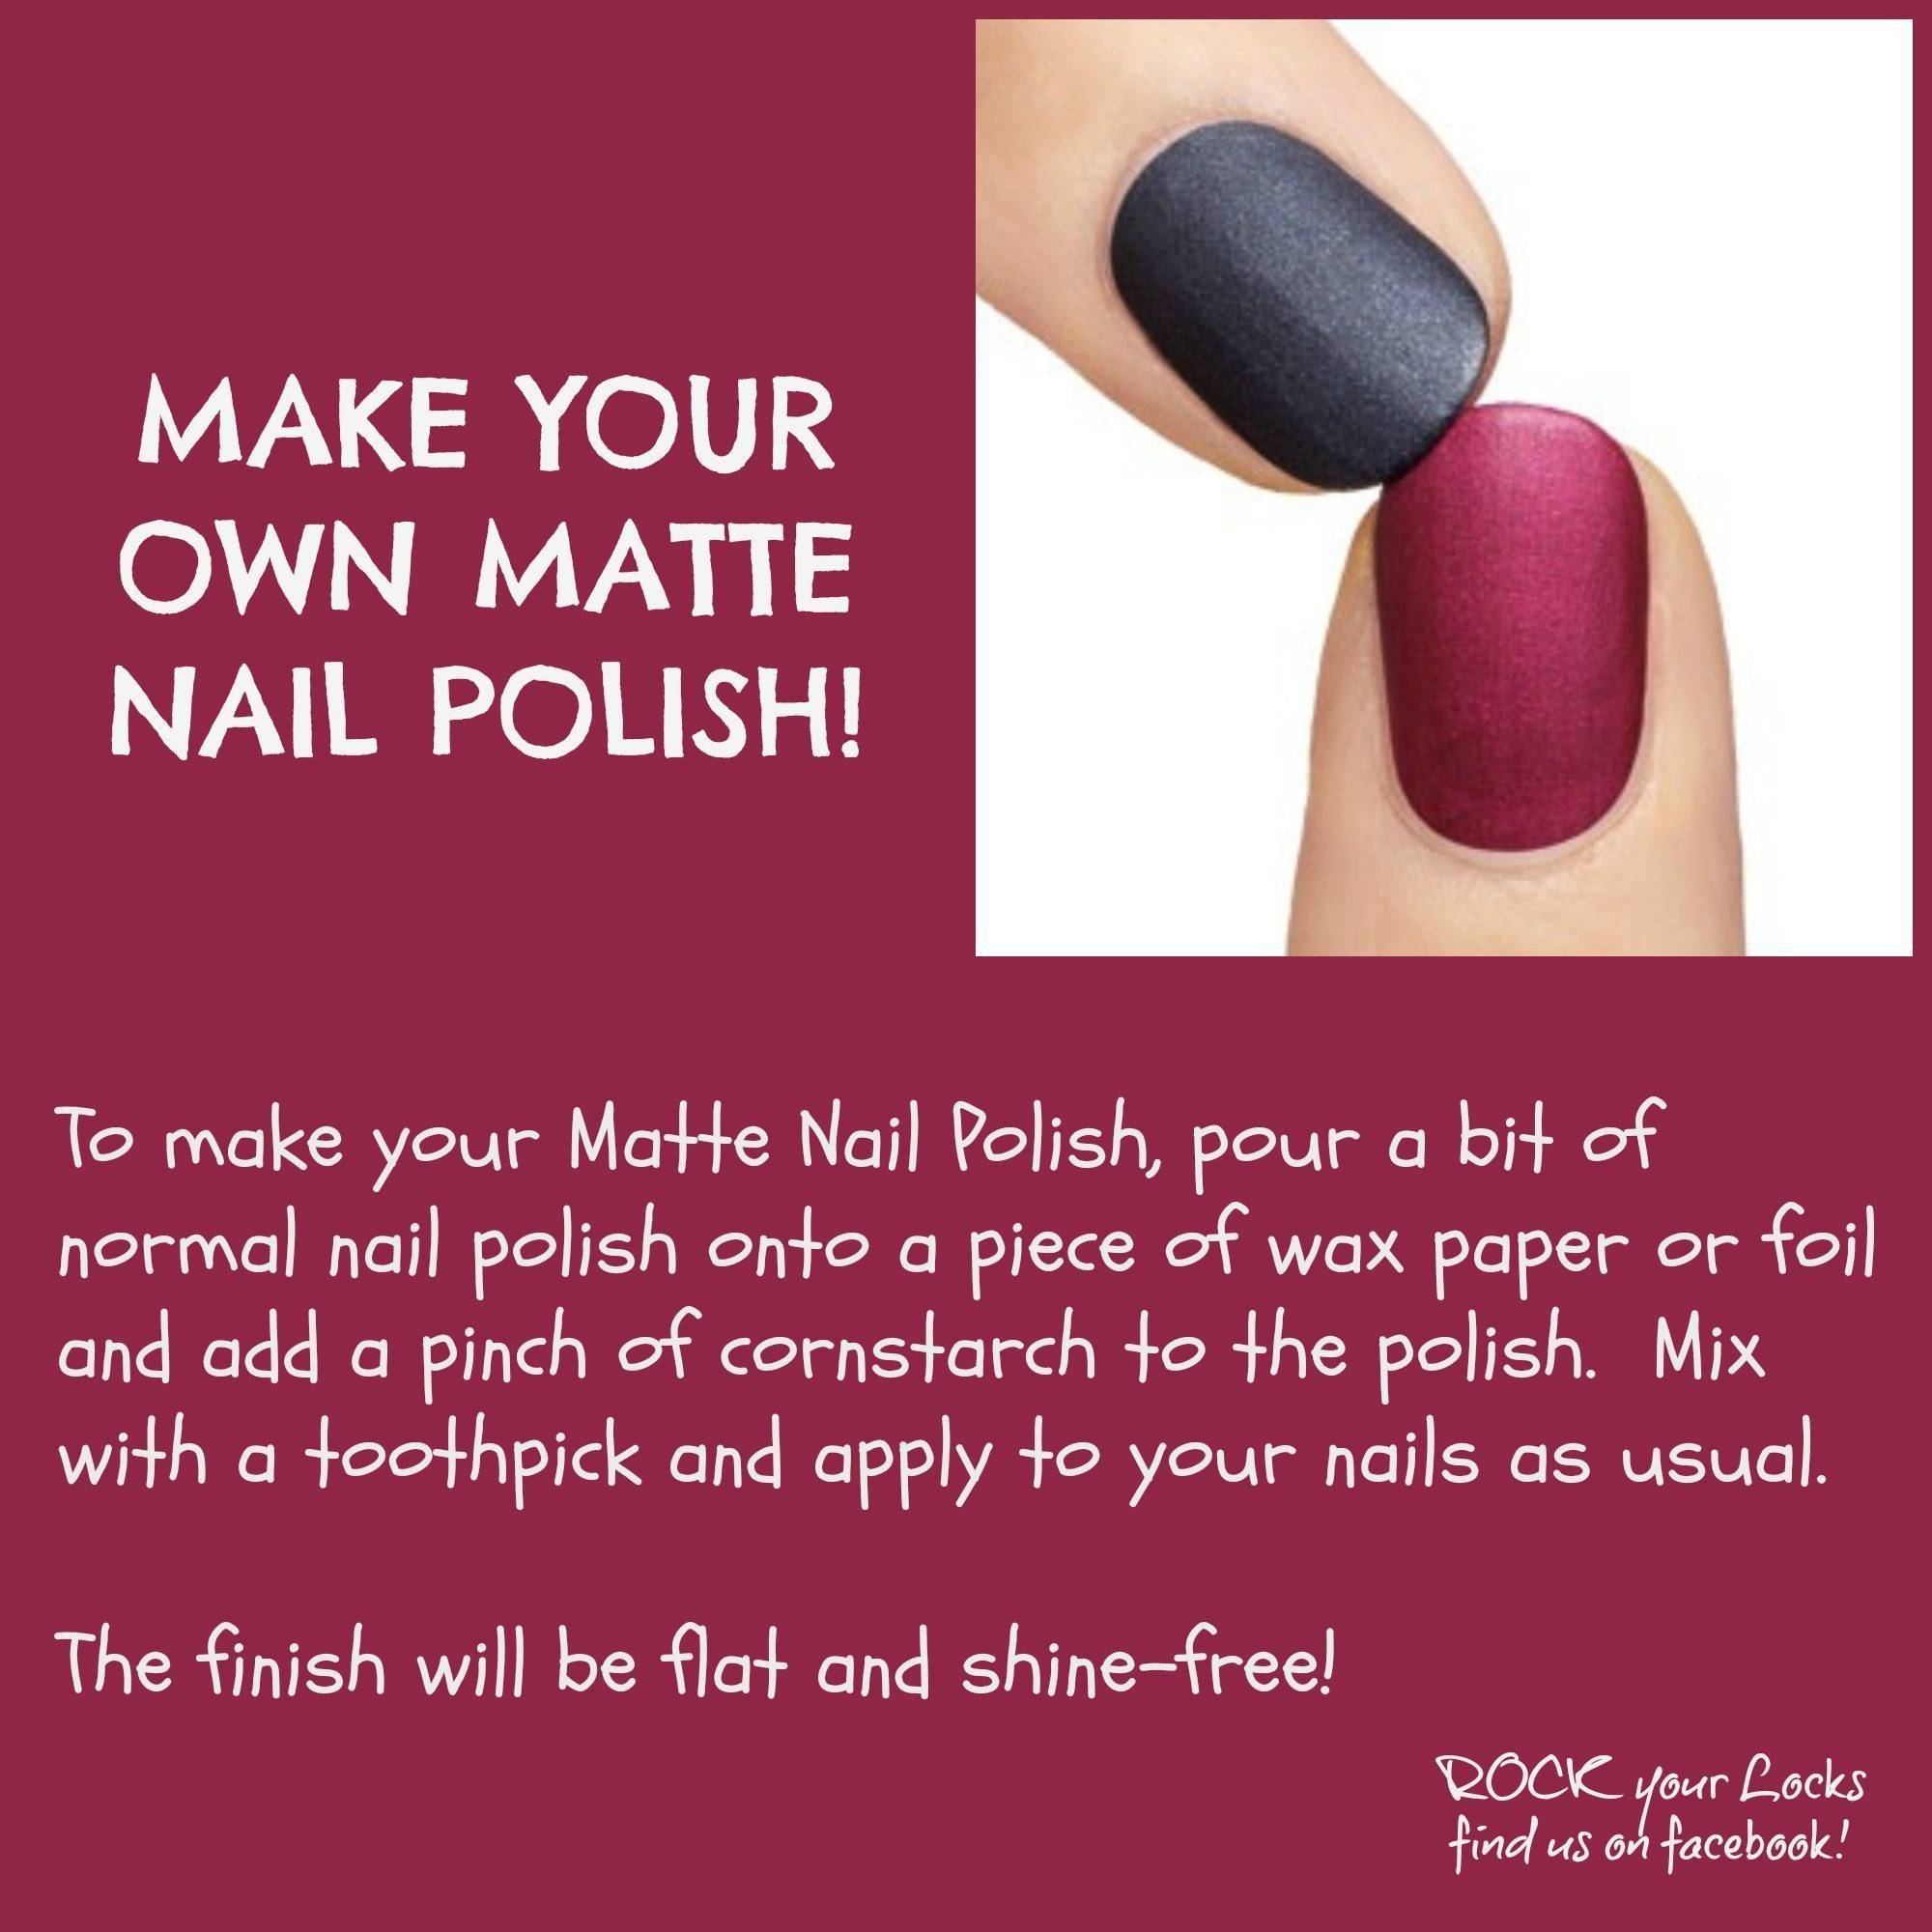 DIY Matte nail polish-not sure if this works but put corn starch ...